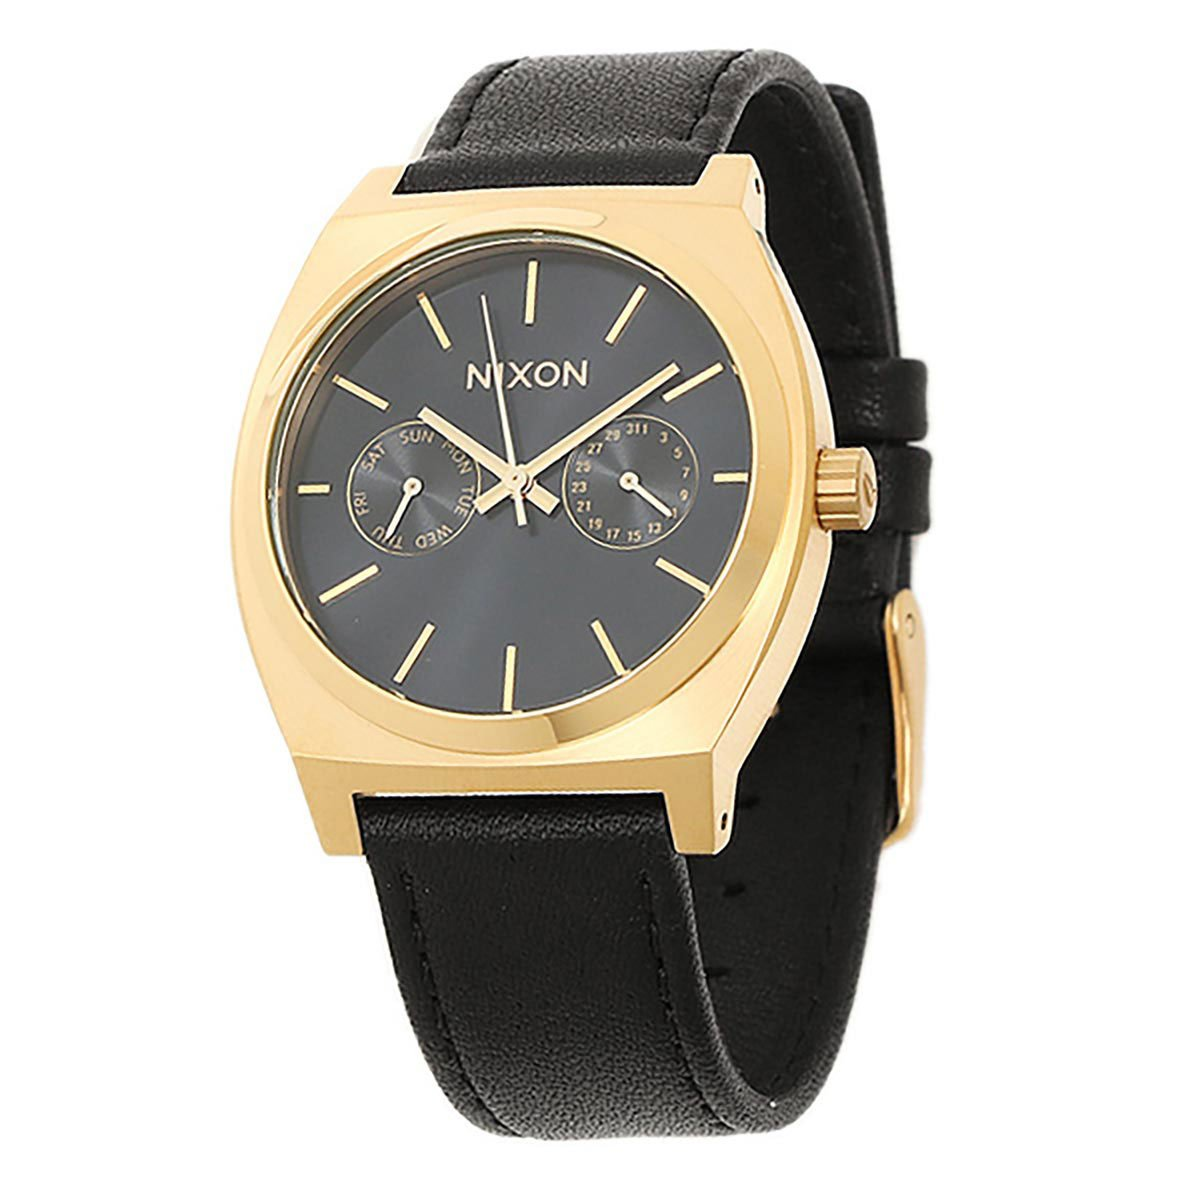 Nixon Time Teller Deluxe Leather Watch Gold Black Sunray by NIXON